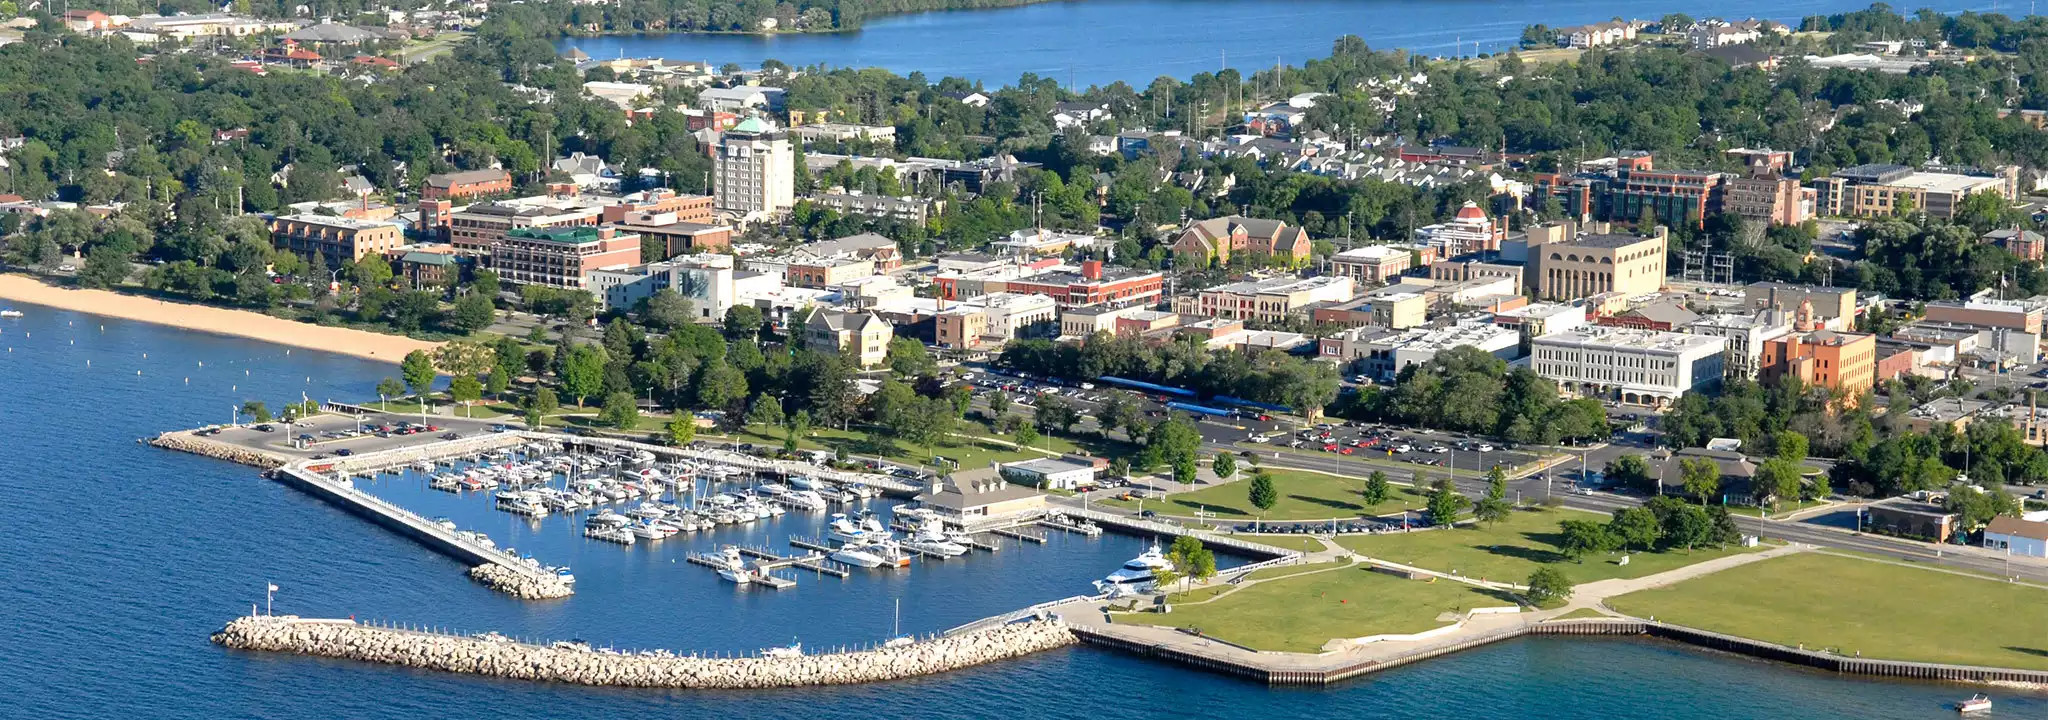 Stupendous Vacation Rentals In Traverse City Mi Cottage Home Rentals Home Interior And Landscaping Ologienasavecom